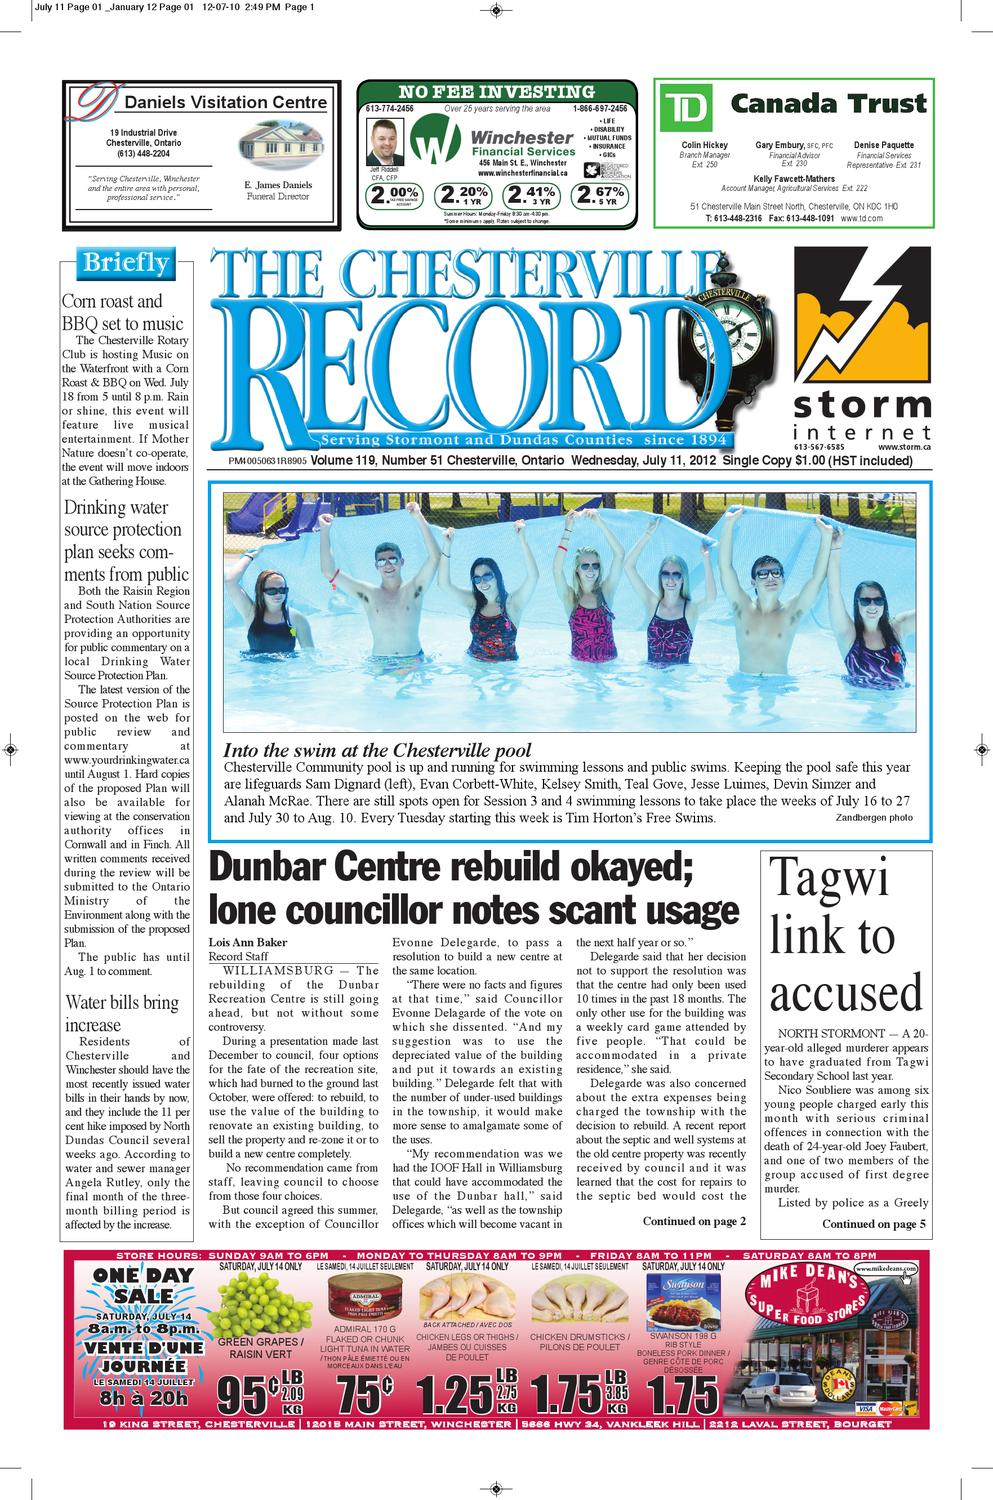 Pub Leclerc Drive Best Of the Chesterville Record July 11 2012 by Robin Morris issuu